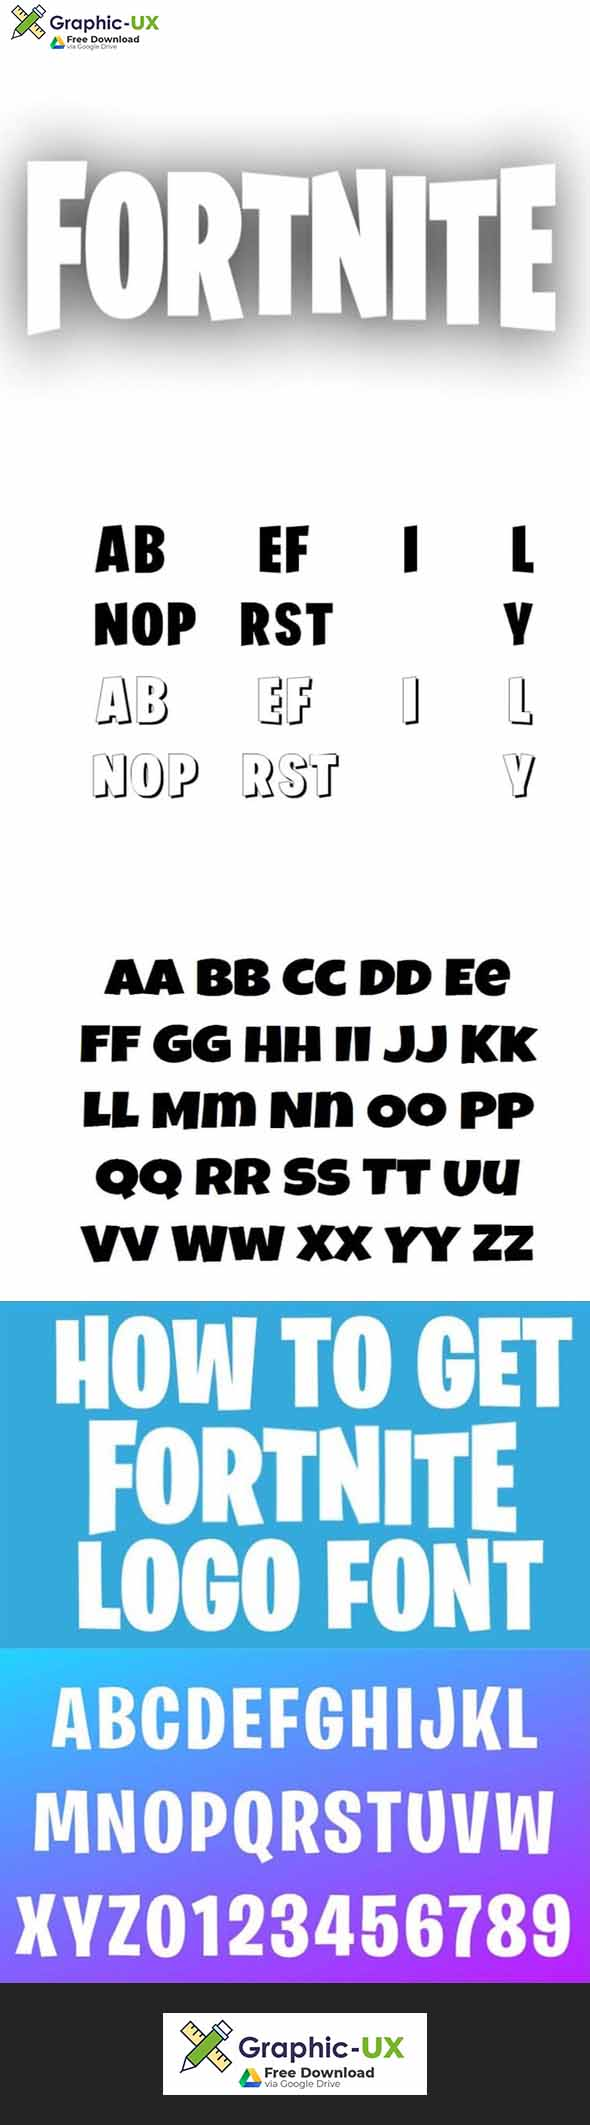 Fortnite Font Graphicux The name that you display in fortnite is just as important as the skins you wear. fortnite font graphicux